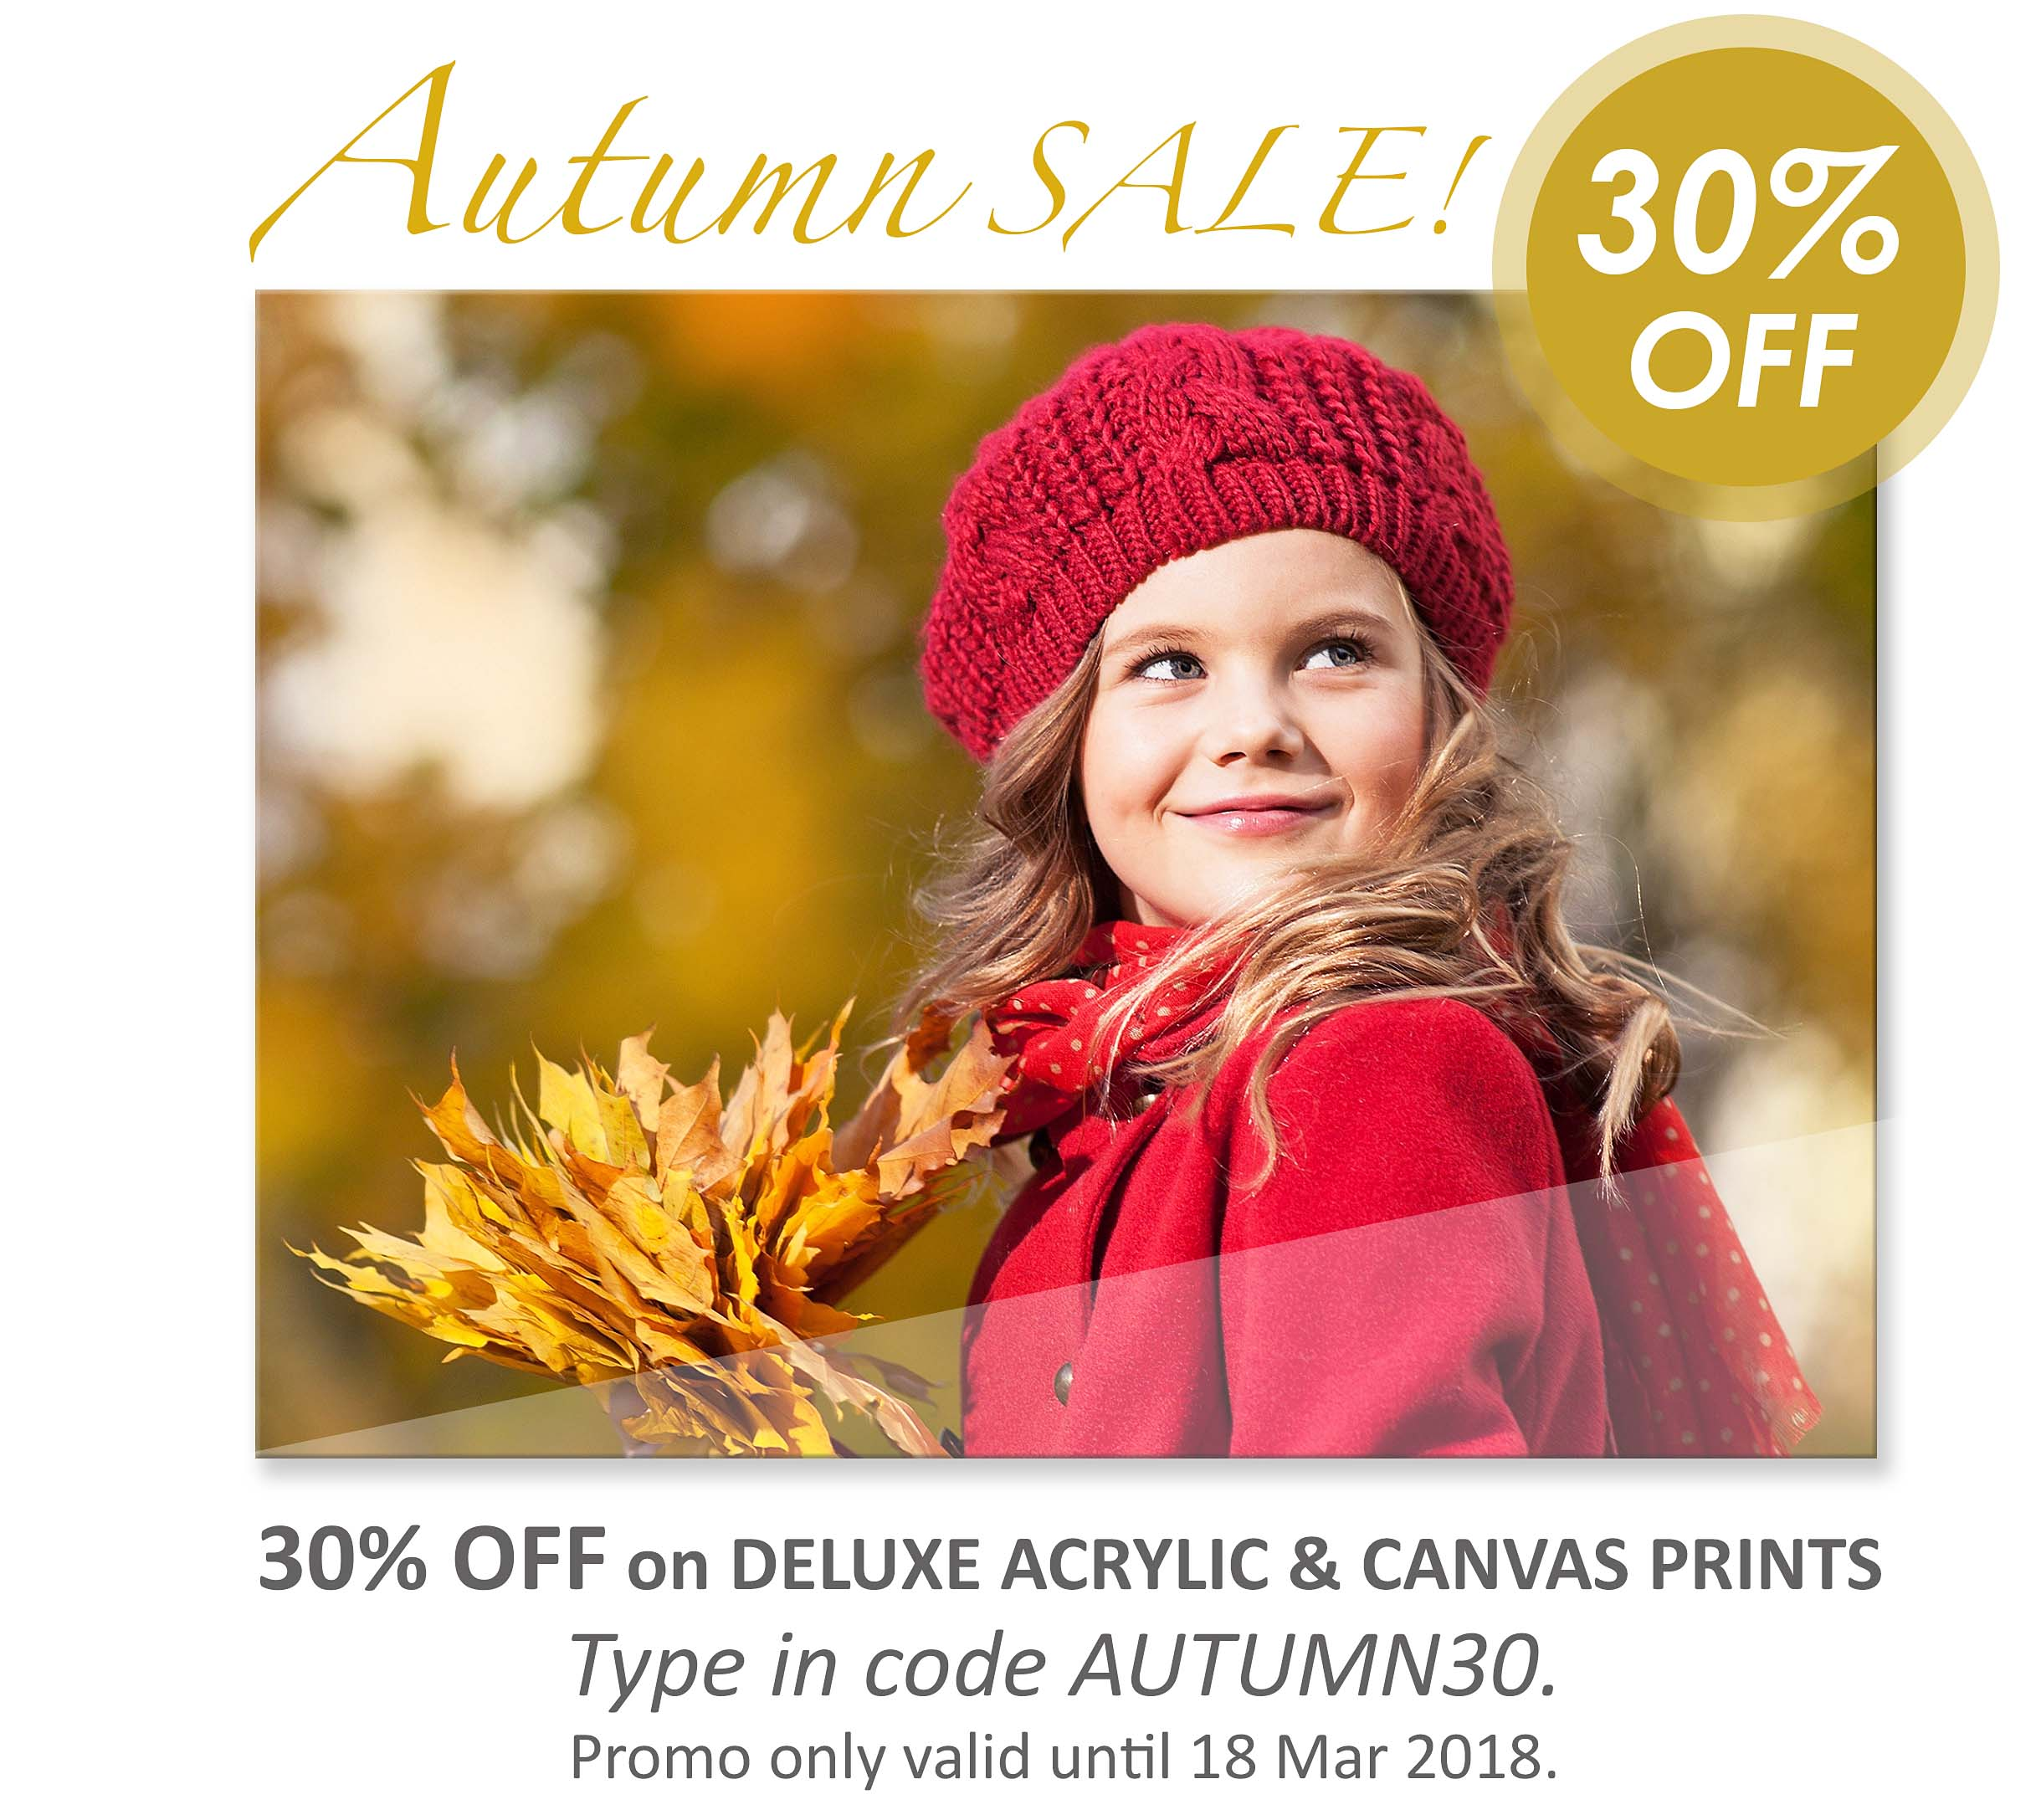 Deluxe Art Fine Art Printing Autumn Sale 2018 Home